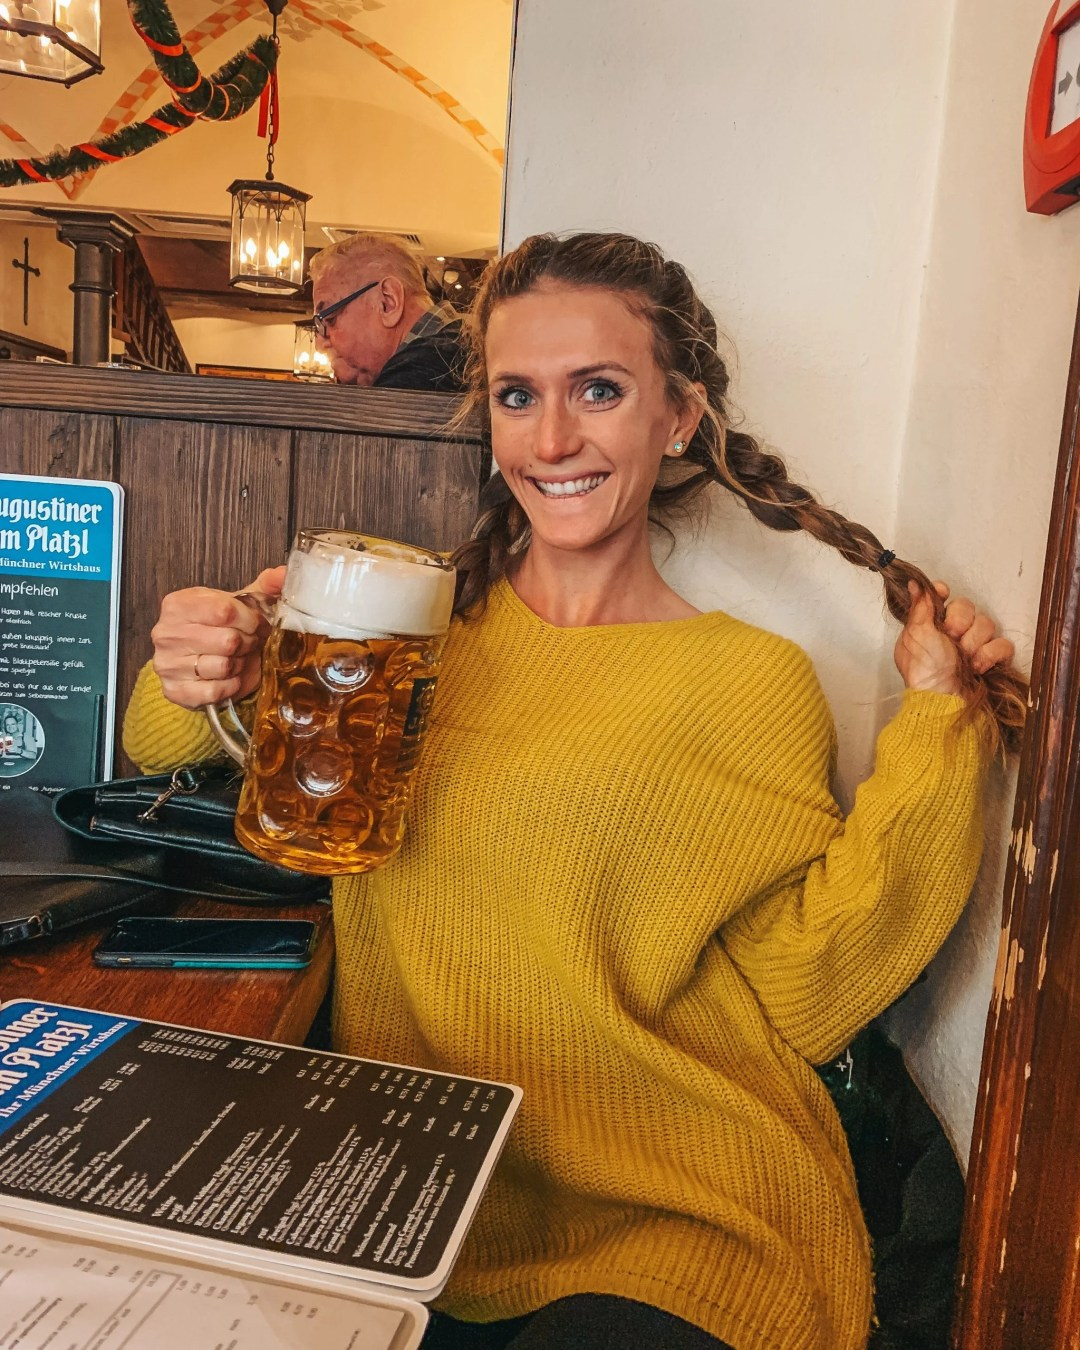 woman in yellow sweater holding large stein glass